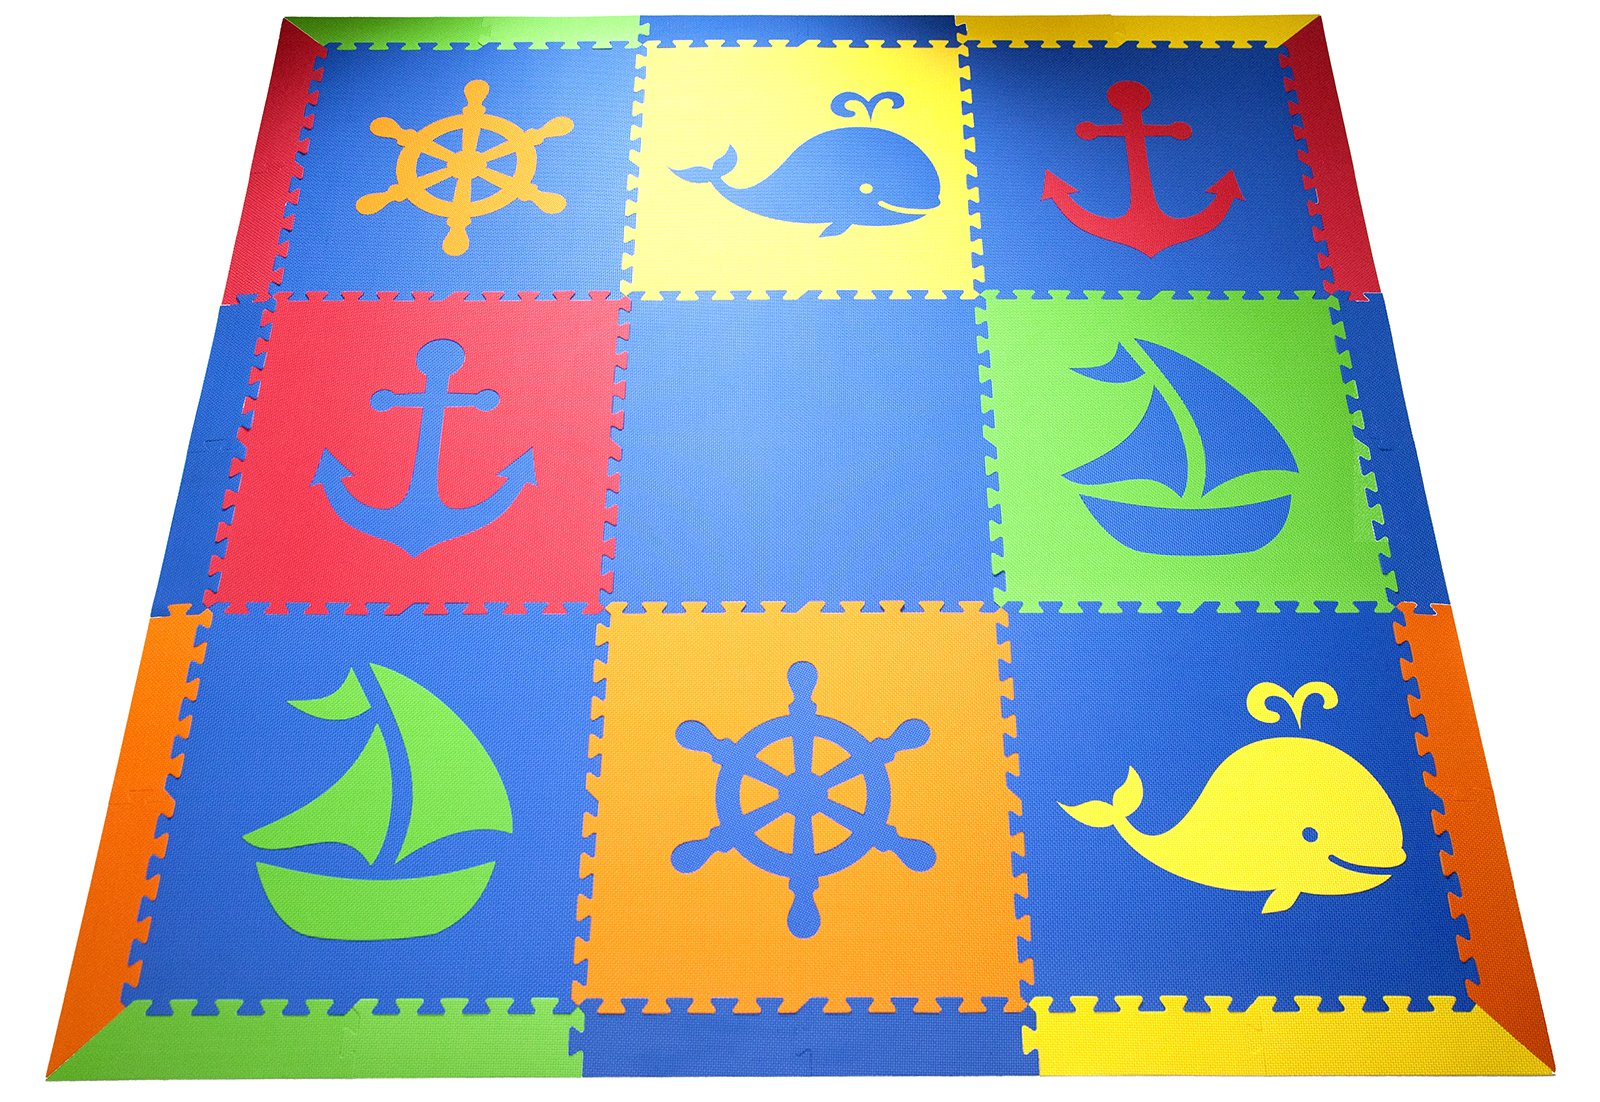 SoftTiles Kids & Baby Foam Playmat- Nautical Ocean Theme- Interlocking Blue, Red, Orange, Yellow, Lime Floor Tiles for Children's Playrooms and Baby Nursery (6.5'x6.5') SCNAUBROYL